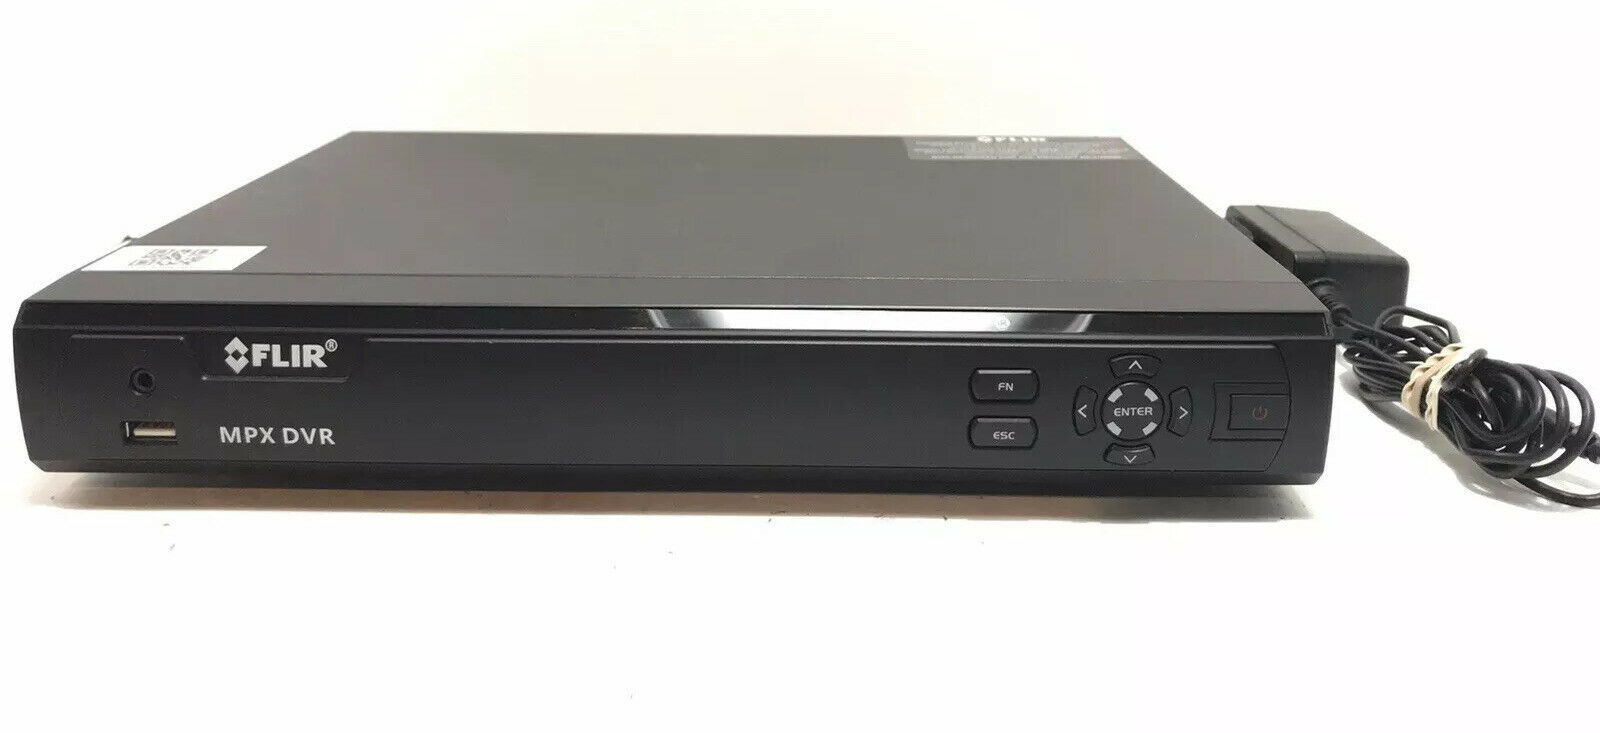 Lorex 8 Channel HD DVR LHV10081T With 6 HD Camera  720P MPX ANALOG and 1TB